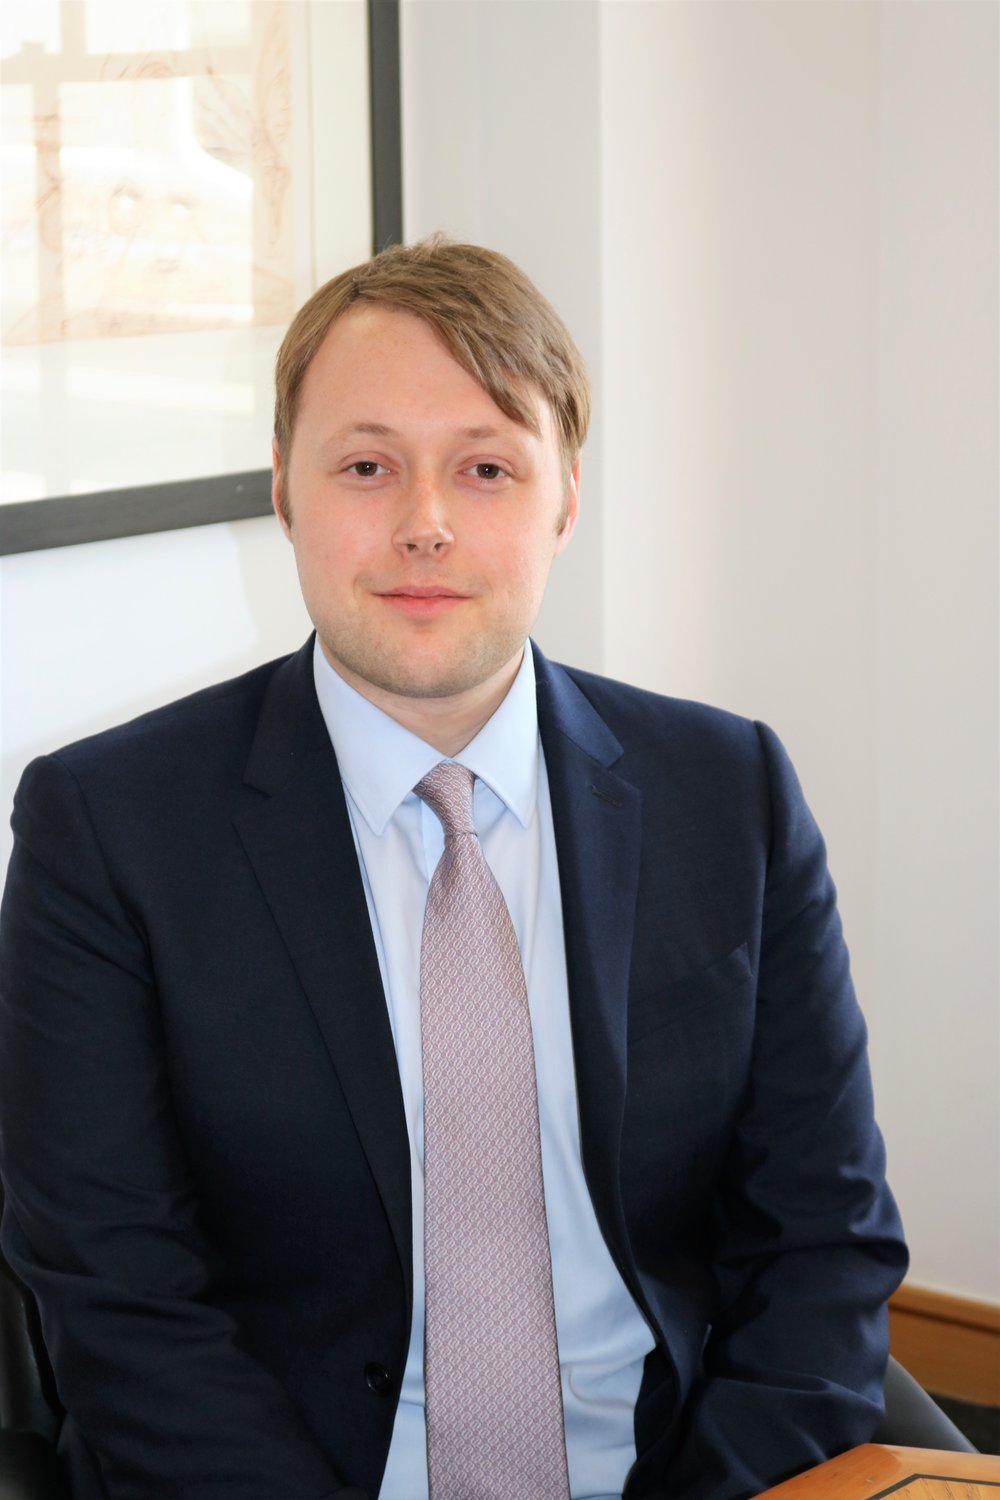 Adam Diamond, Legal Assistant   Adam assists with all aspects of the real estate finance offering, working alongside David Yetman. He works on legal opinions, security and lending matters.